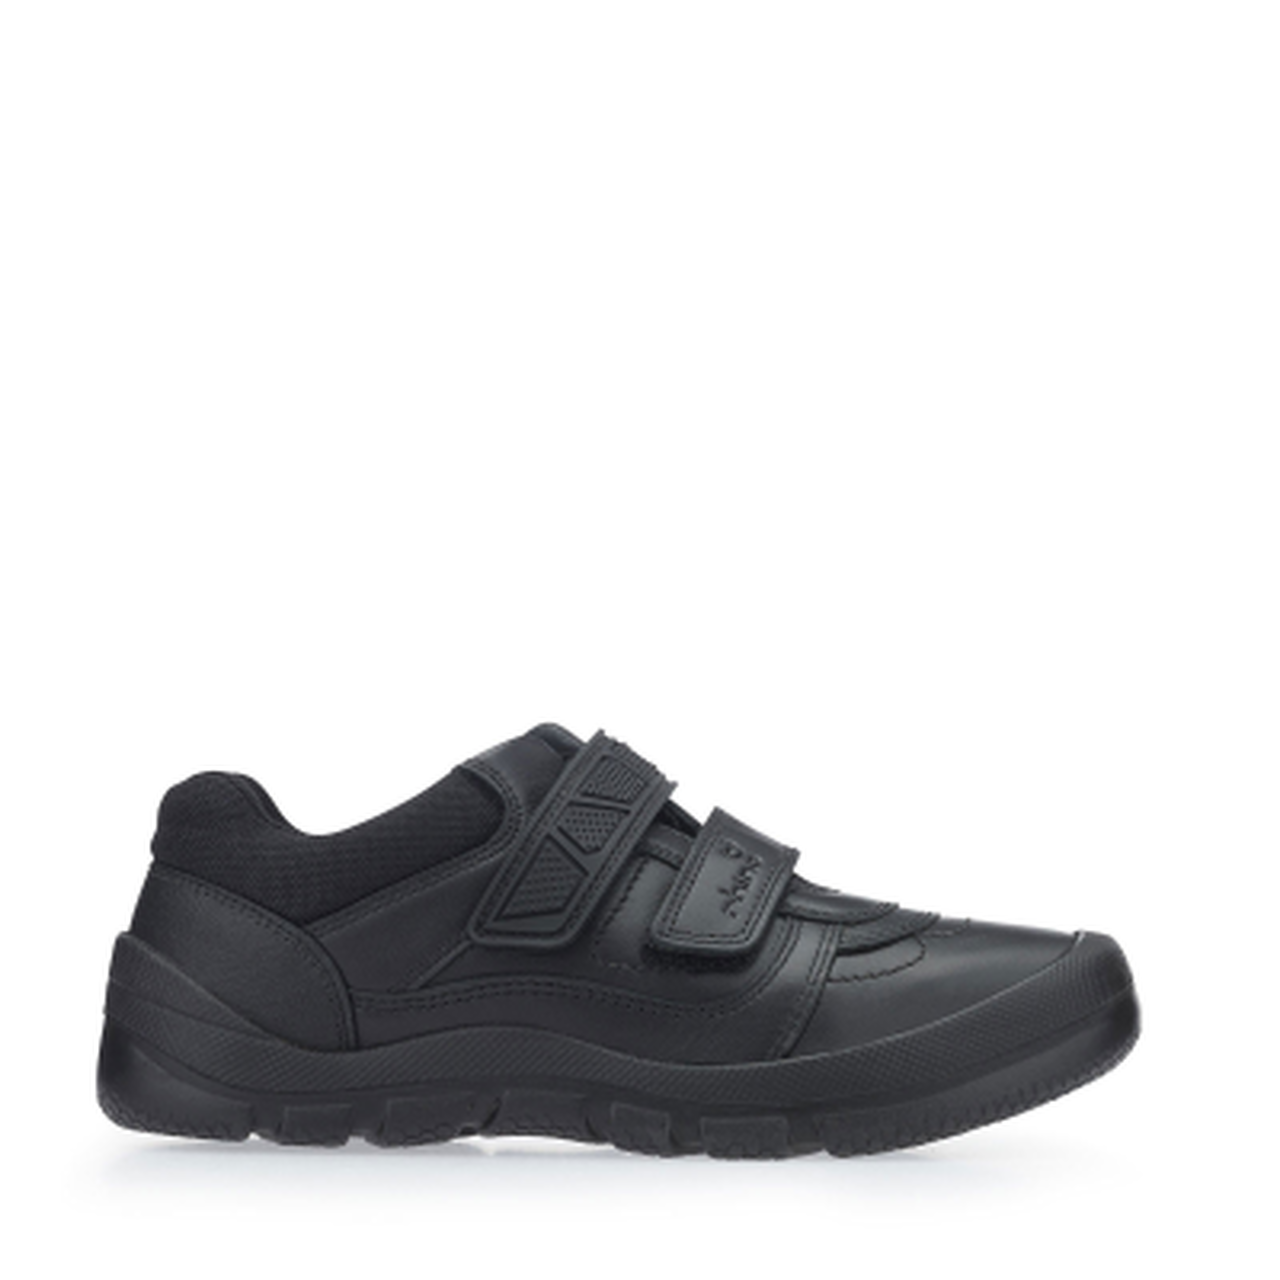 Start-rite Rhino Warrior black leather school shoe